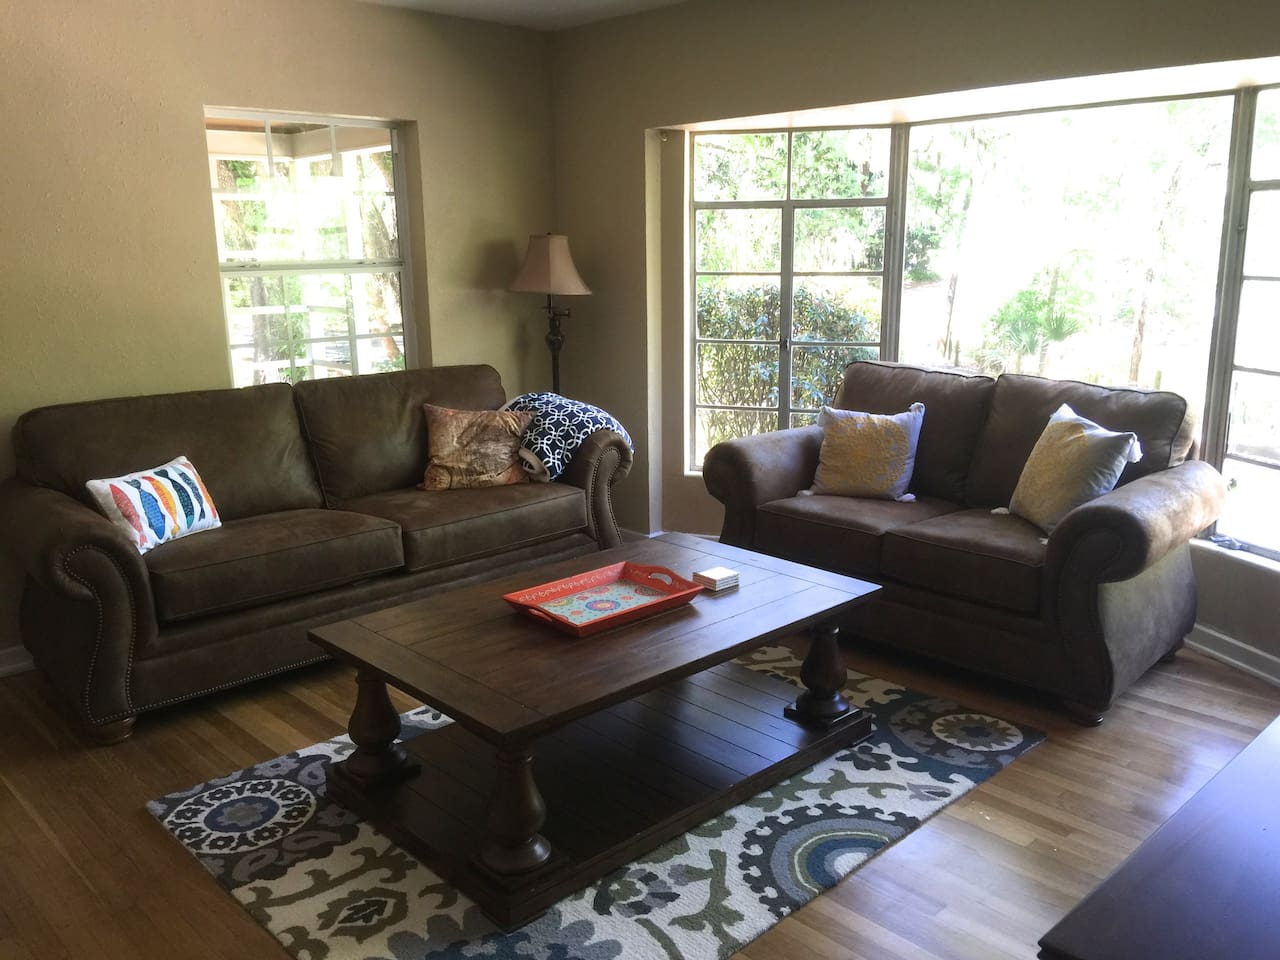 Living room with hardwood floors.  All furniture is brand new as of April 2016.  Sofa in living room has a pull out couch and an air mattress is offered as well if needed.